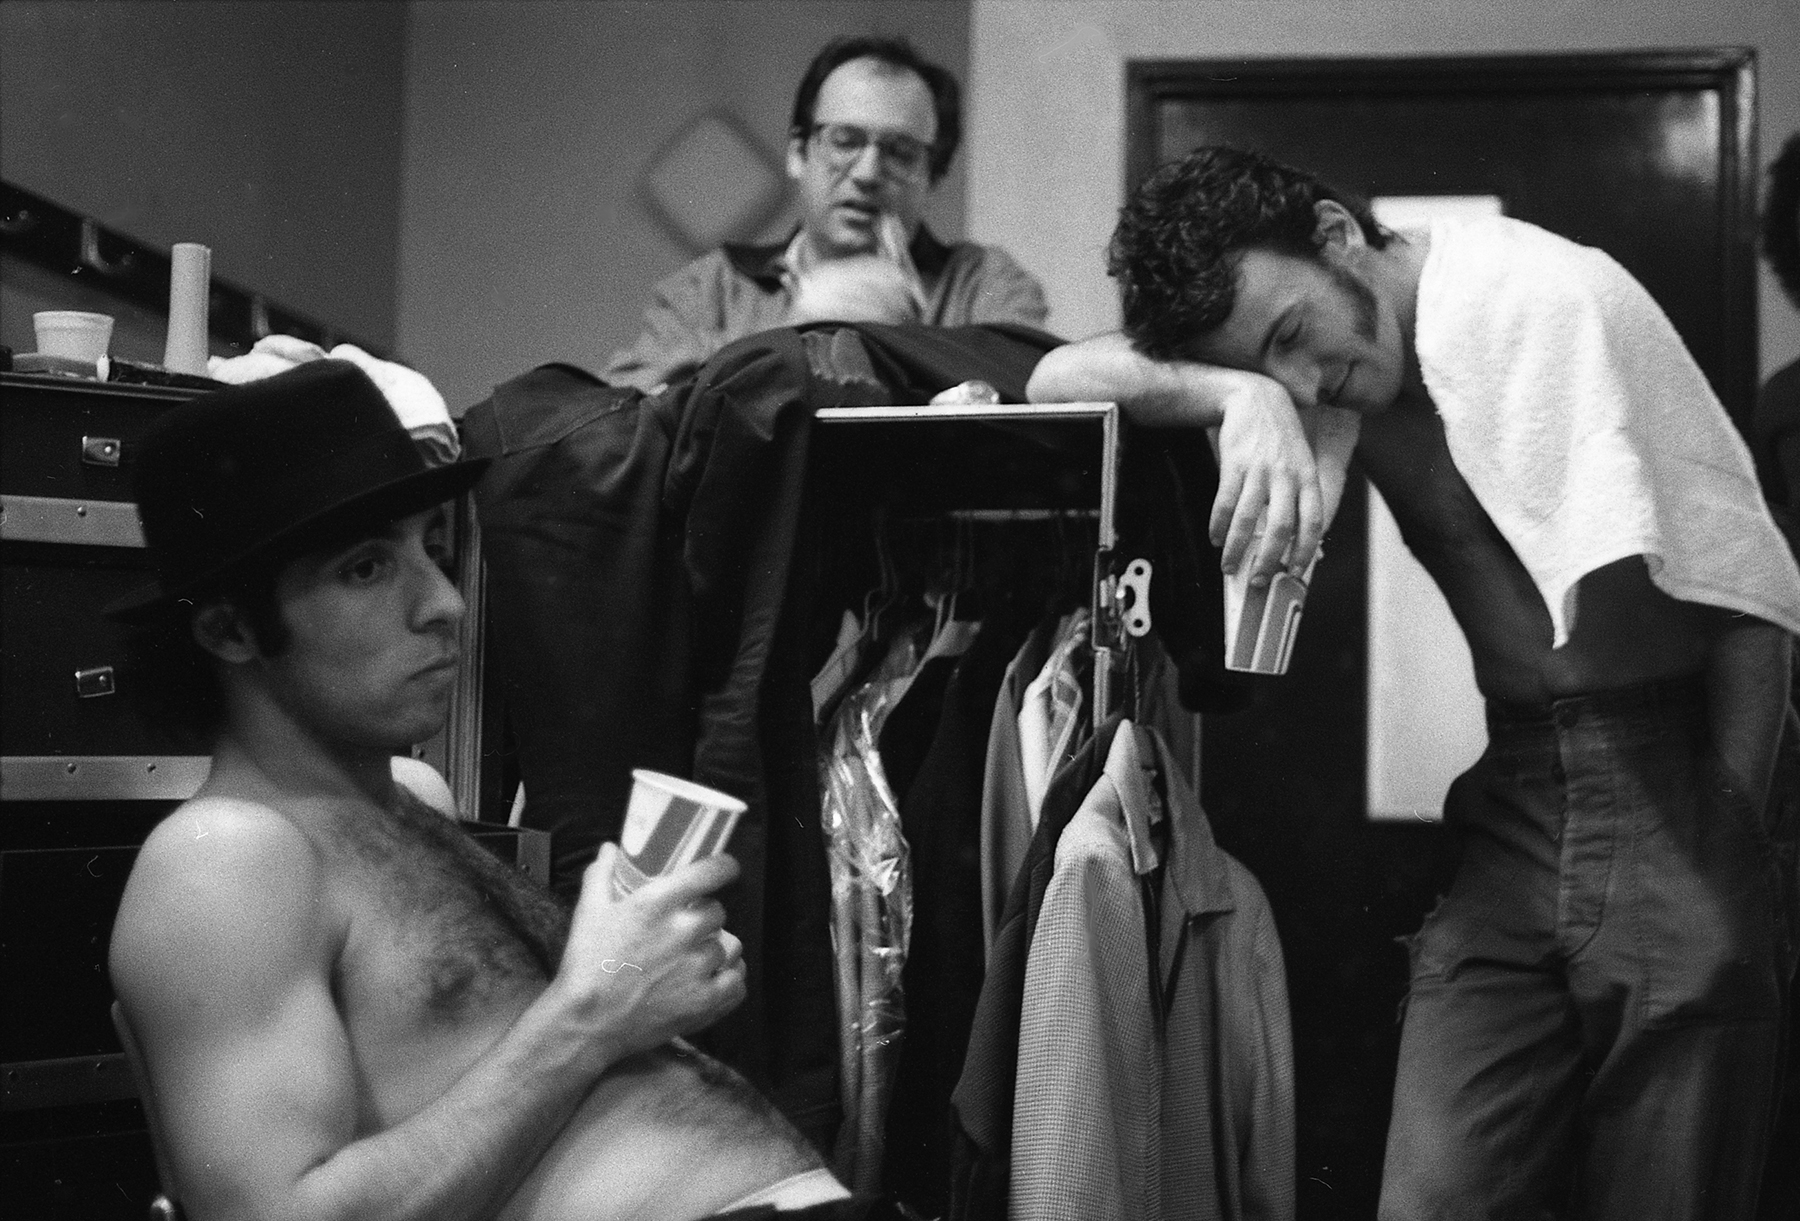 """TEAM OF RIVALS: Van Zandt, Landau, and Springsteen backstage in Brussels, 1981. """"At the time, I was hurt by the thought that maybe Jon resented my complete direct access to Bruce,"""" Van Zandt writes. """"In the end, I don't think Jon had anything to do with the way things changed. There comes a time when people want to evolve without any baggage."""""""